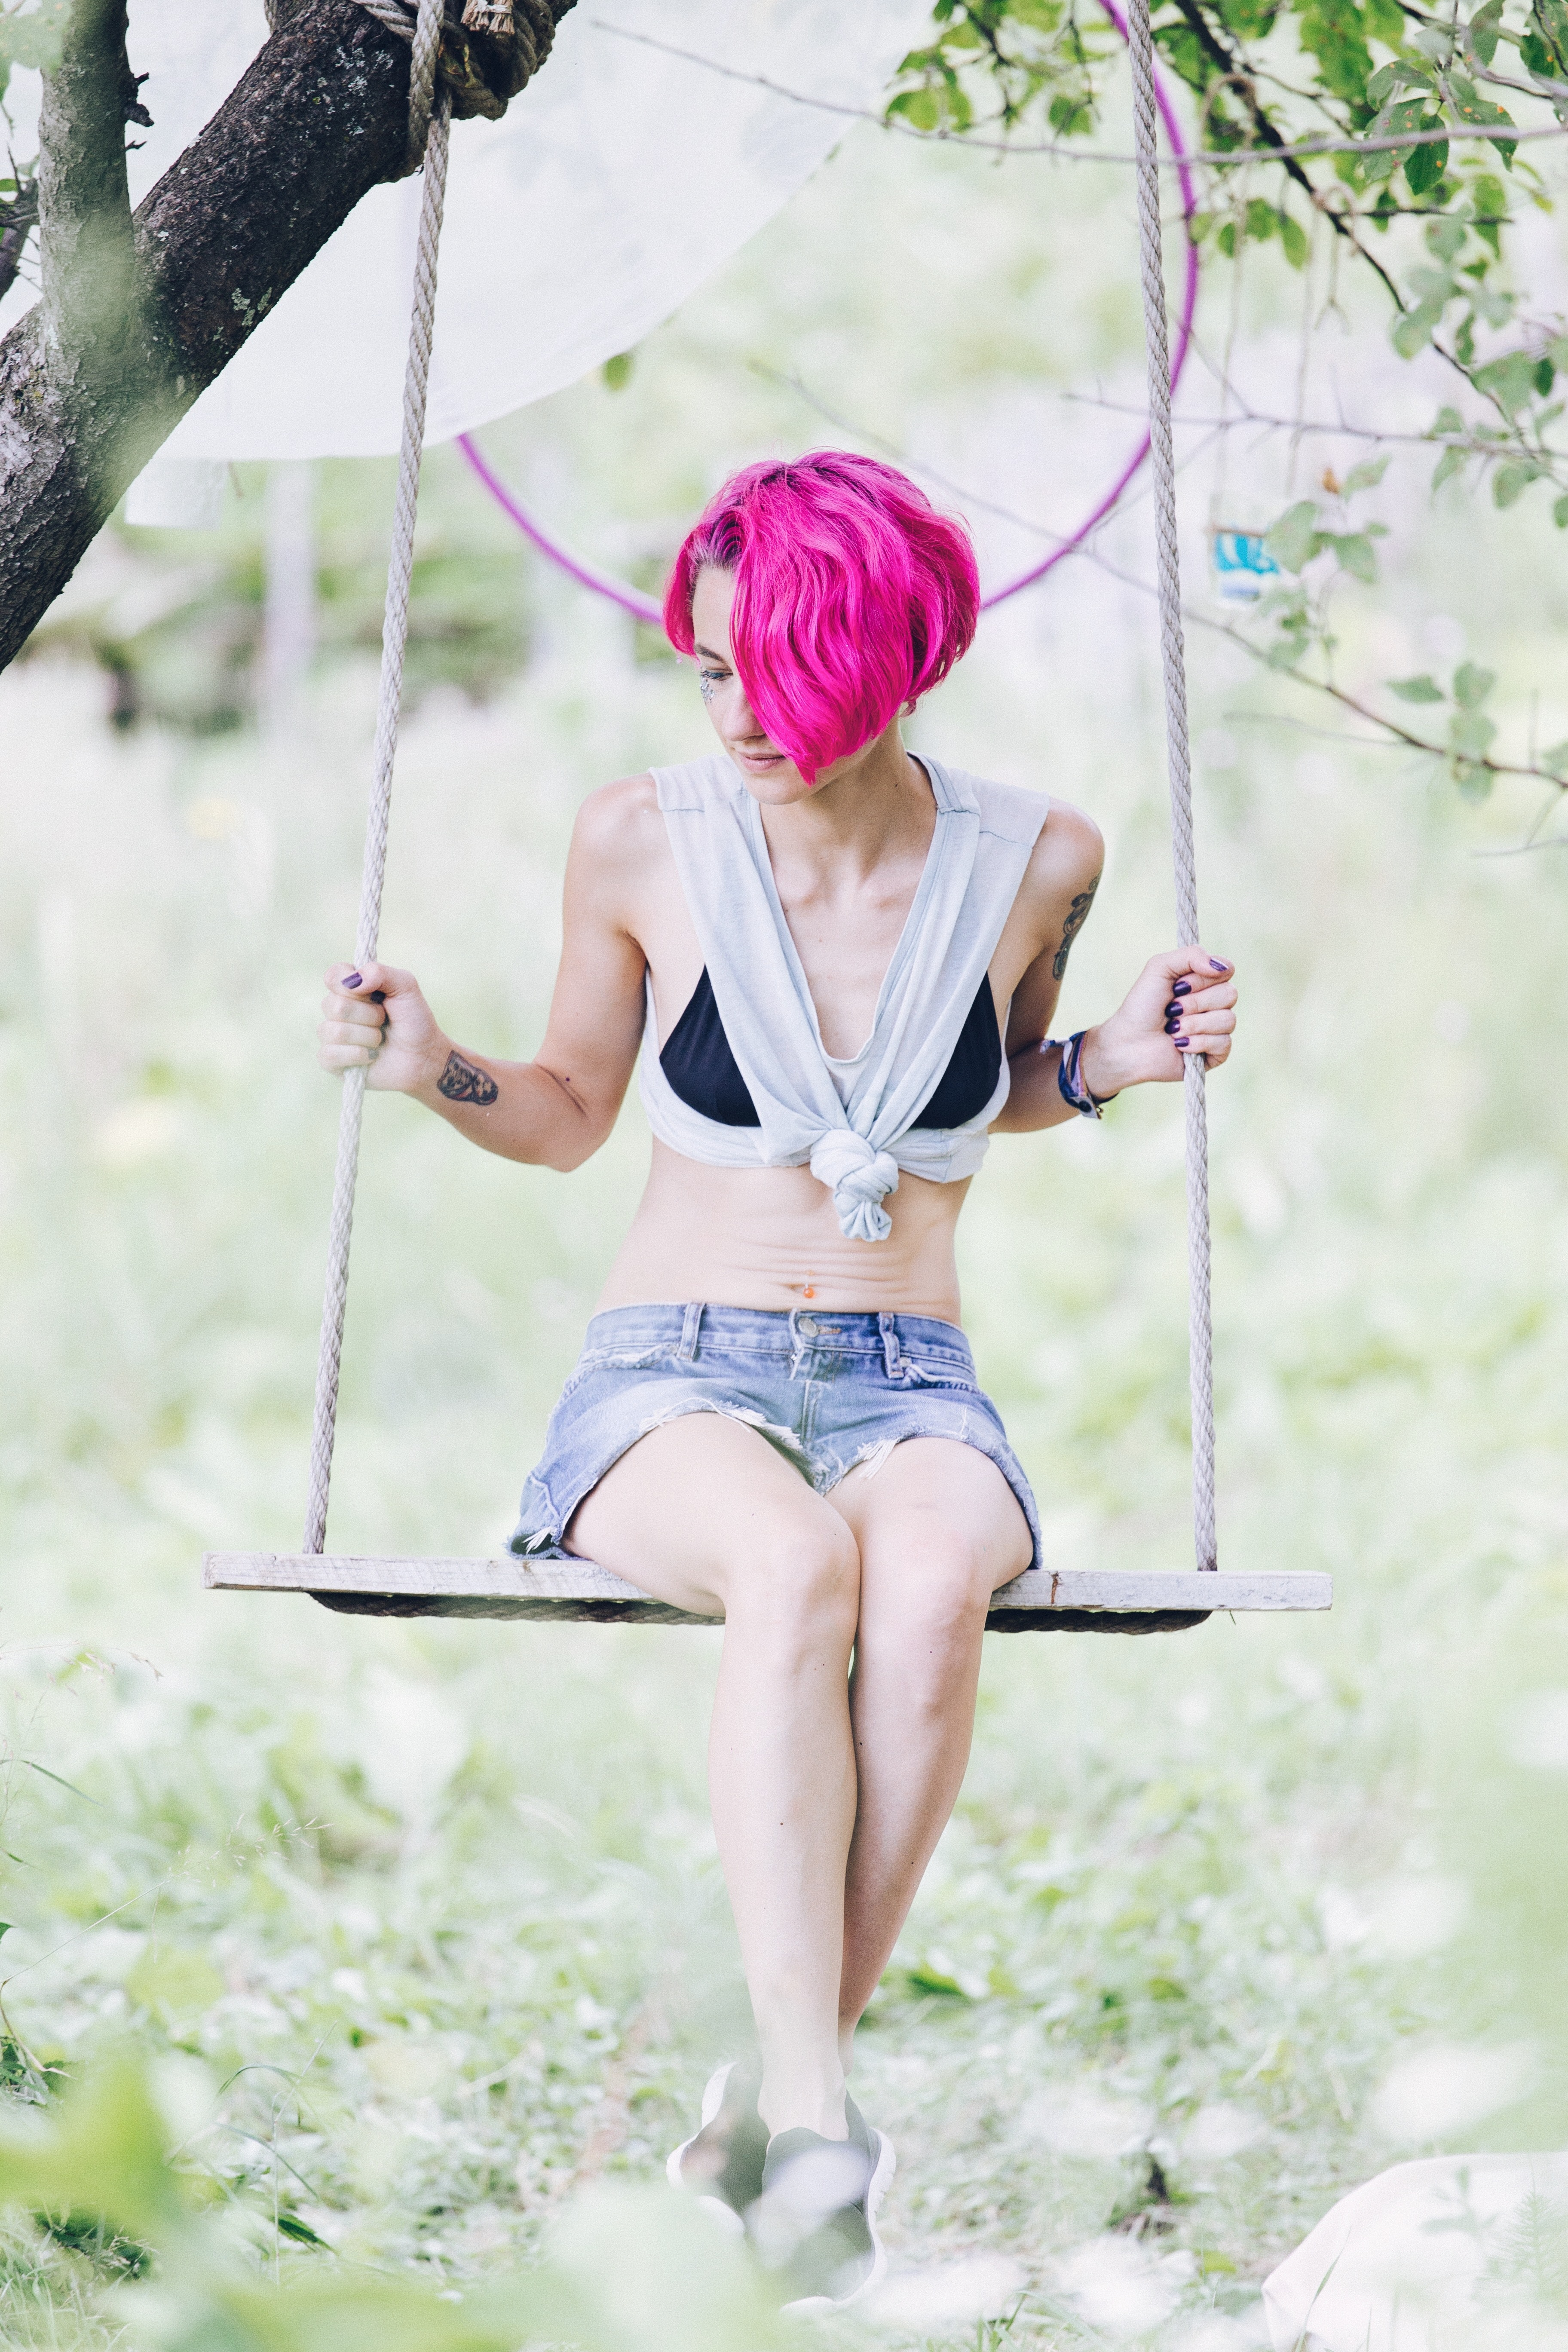 woman sitting on swing under tree during daytime